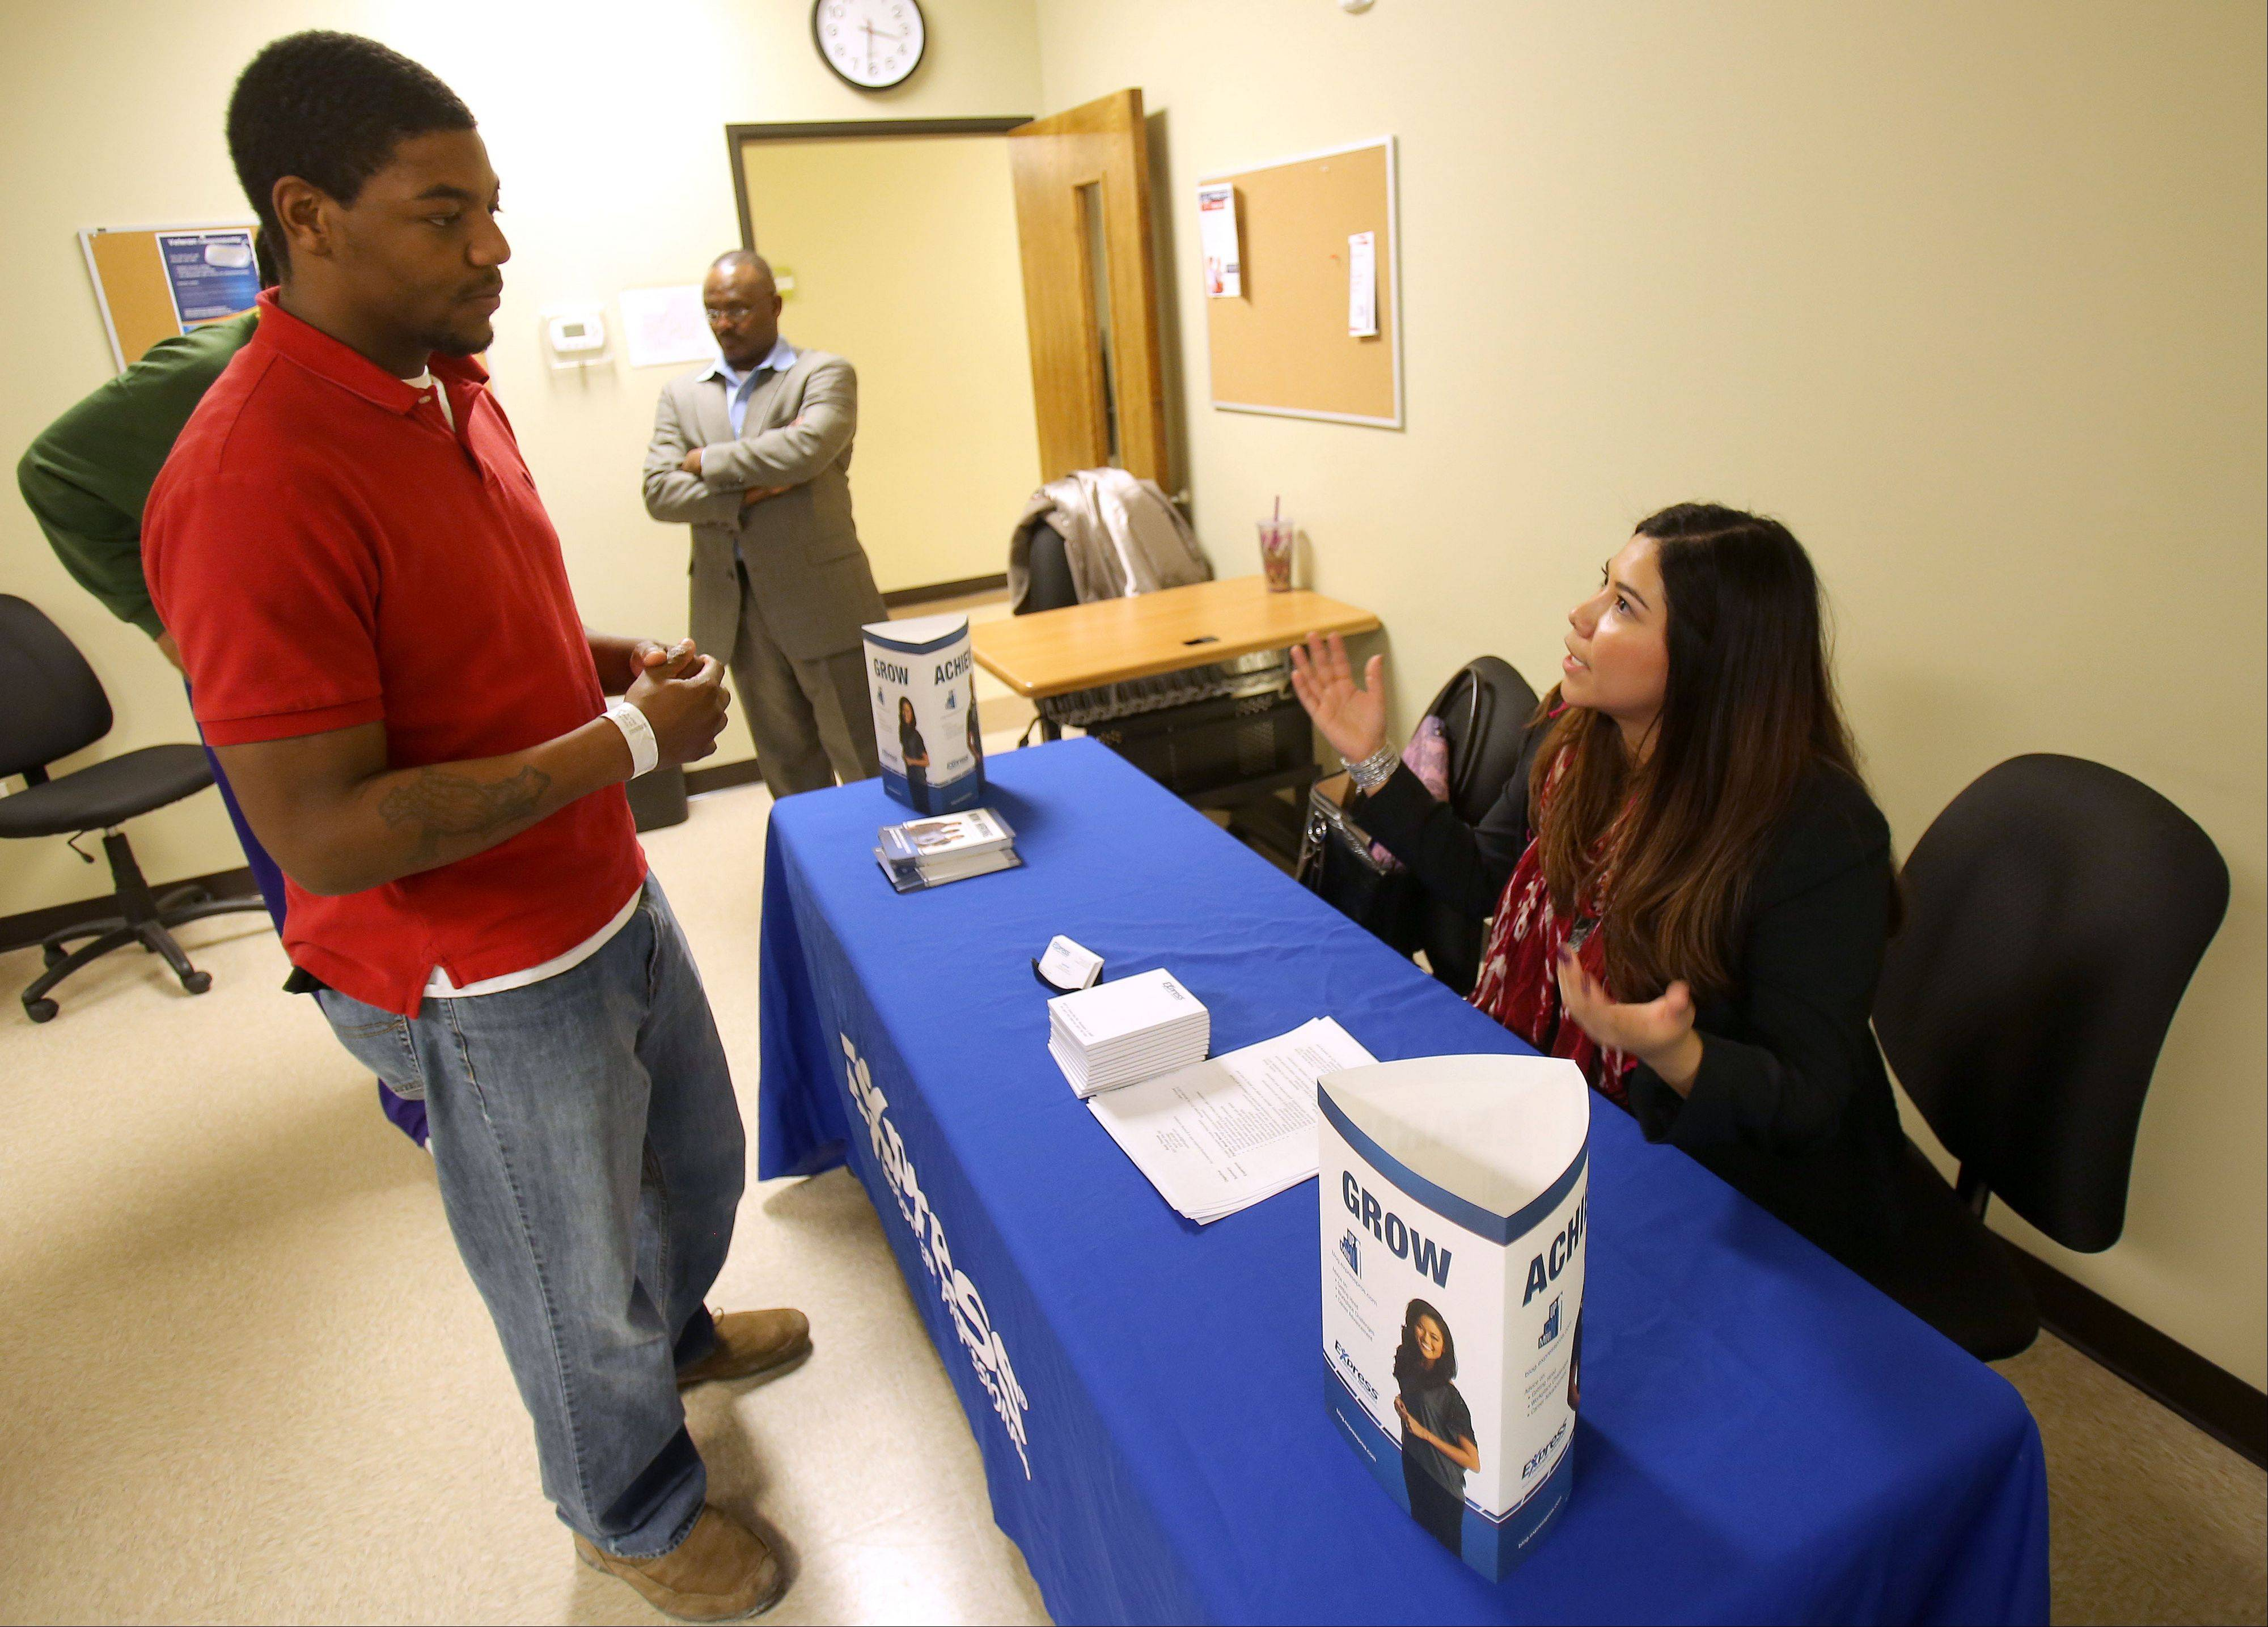 Rudy Thomas of North Chicago talks with staffing specialist Laura Leal of Express Employment Agency on Wednesday during a Veteran's Entrepreneurship Workshop at Computer Systems Institute in Gurnee.